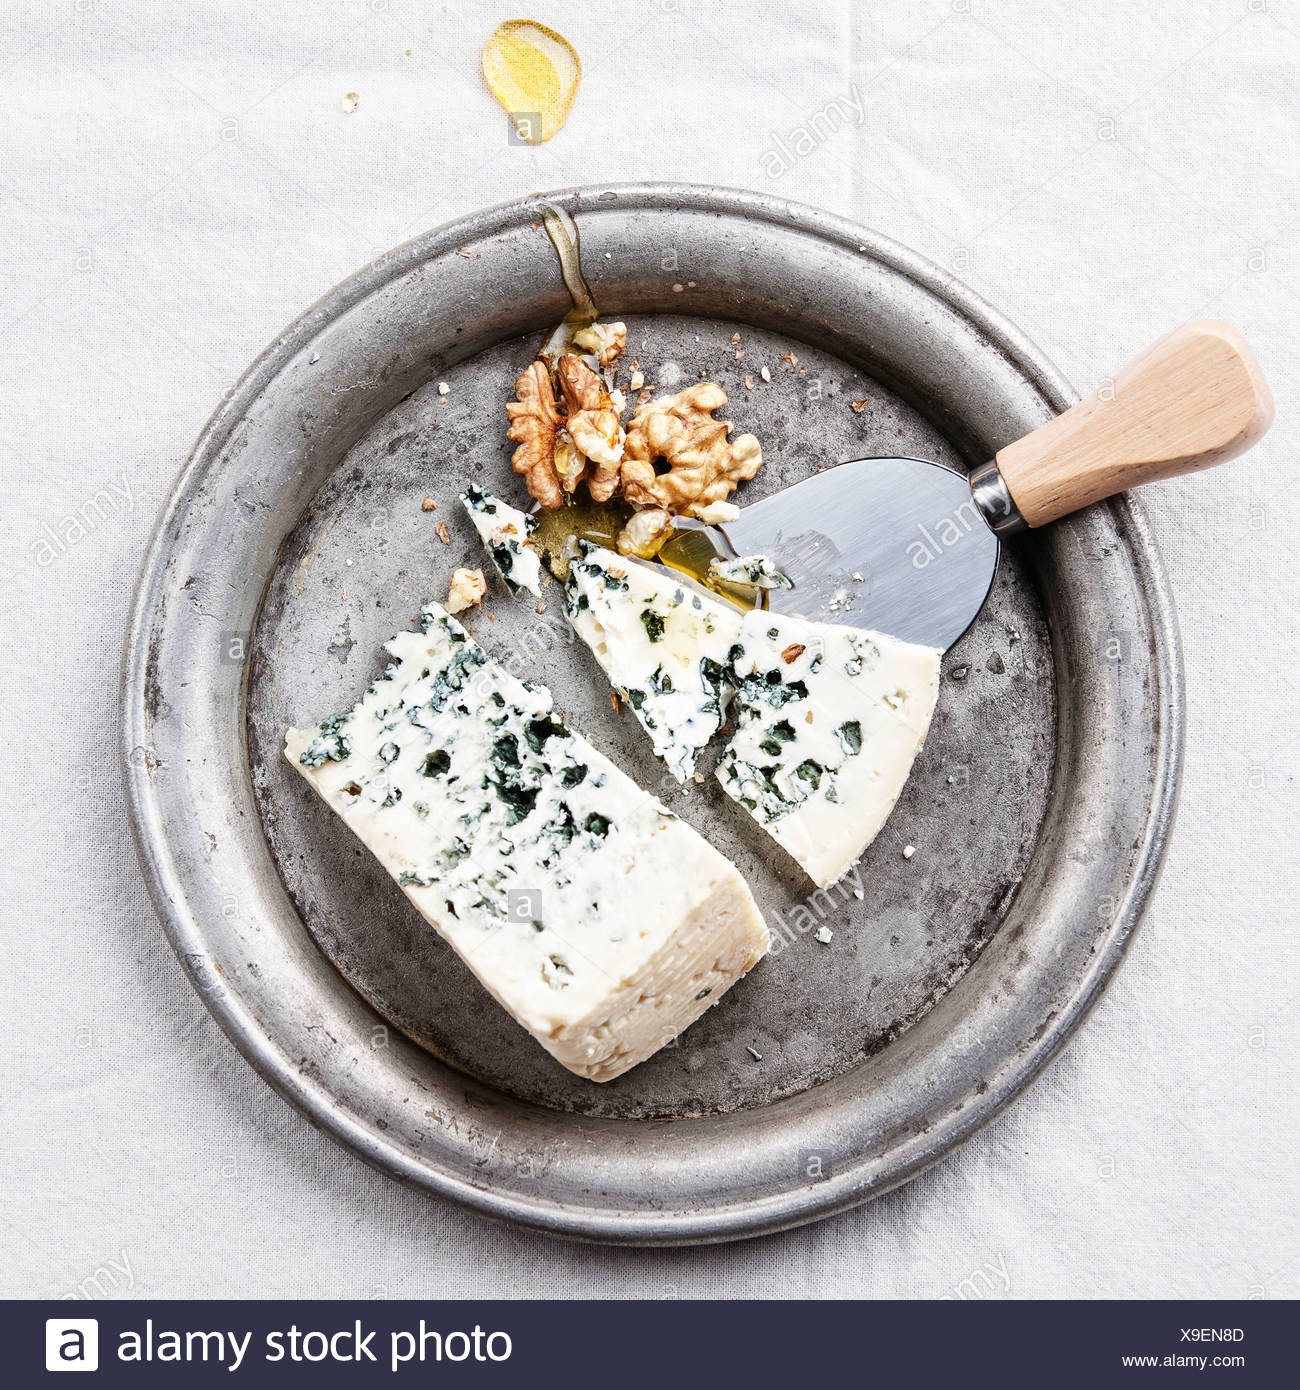 Dor Blue cheese with honey and nuts on plate - Stock Image